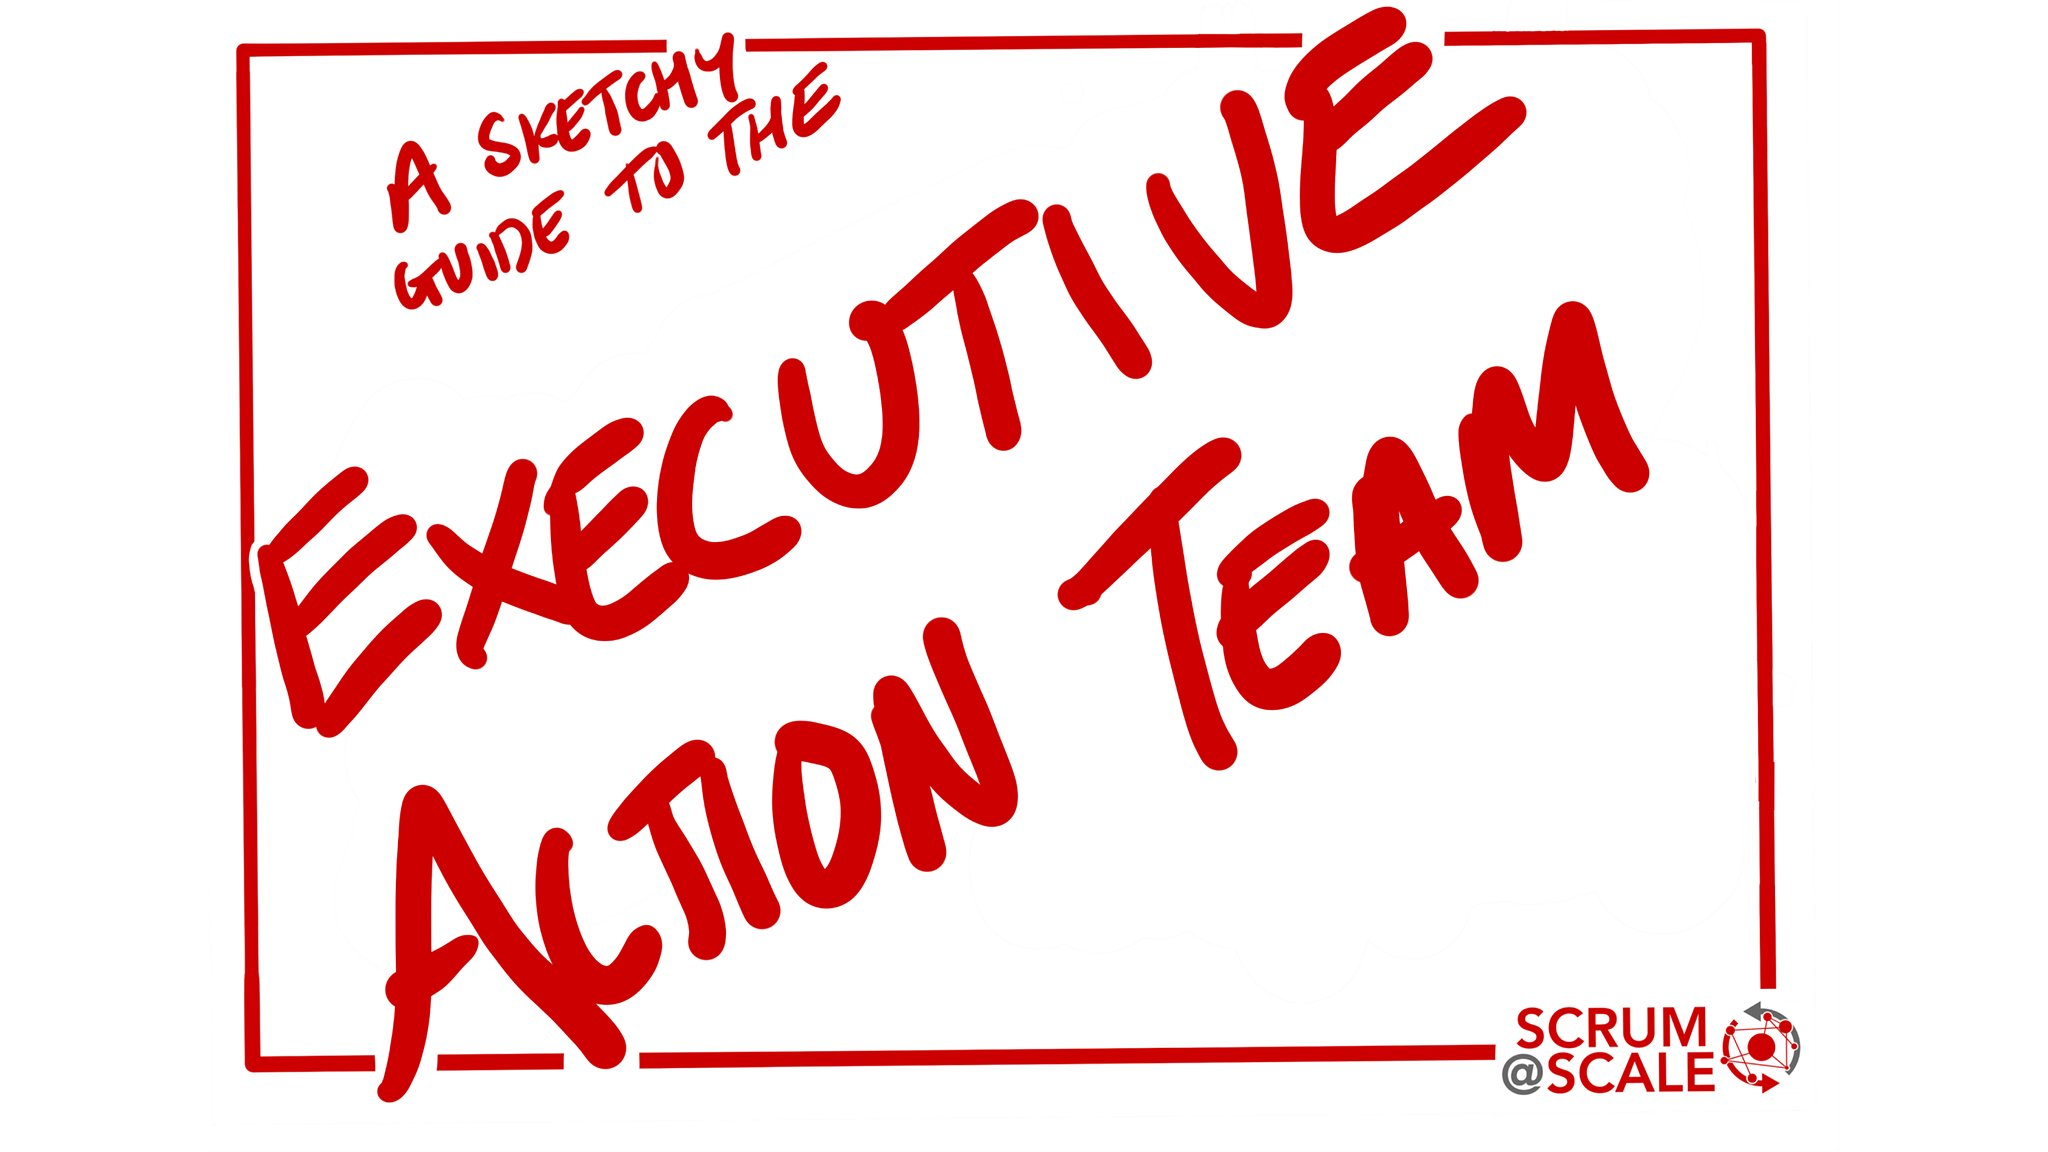 The Executive Action Team (EAT) - Scrum@Scale Component